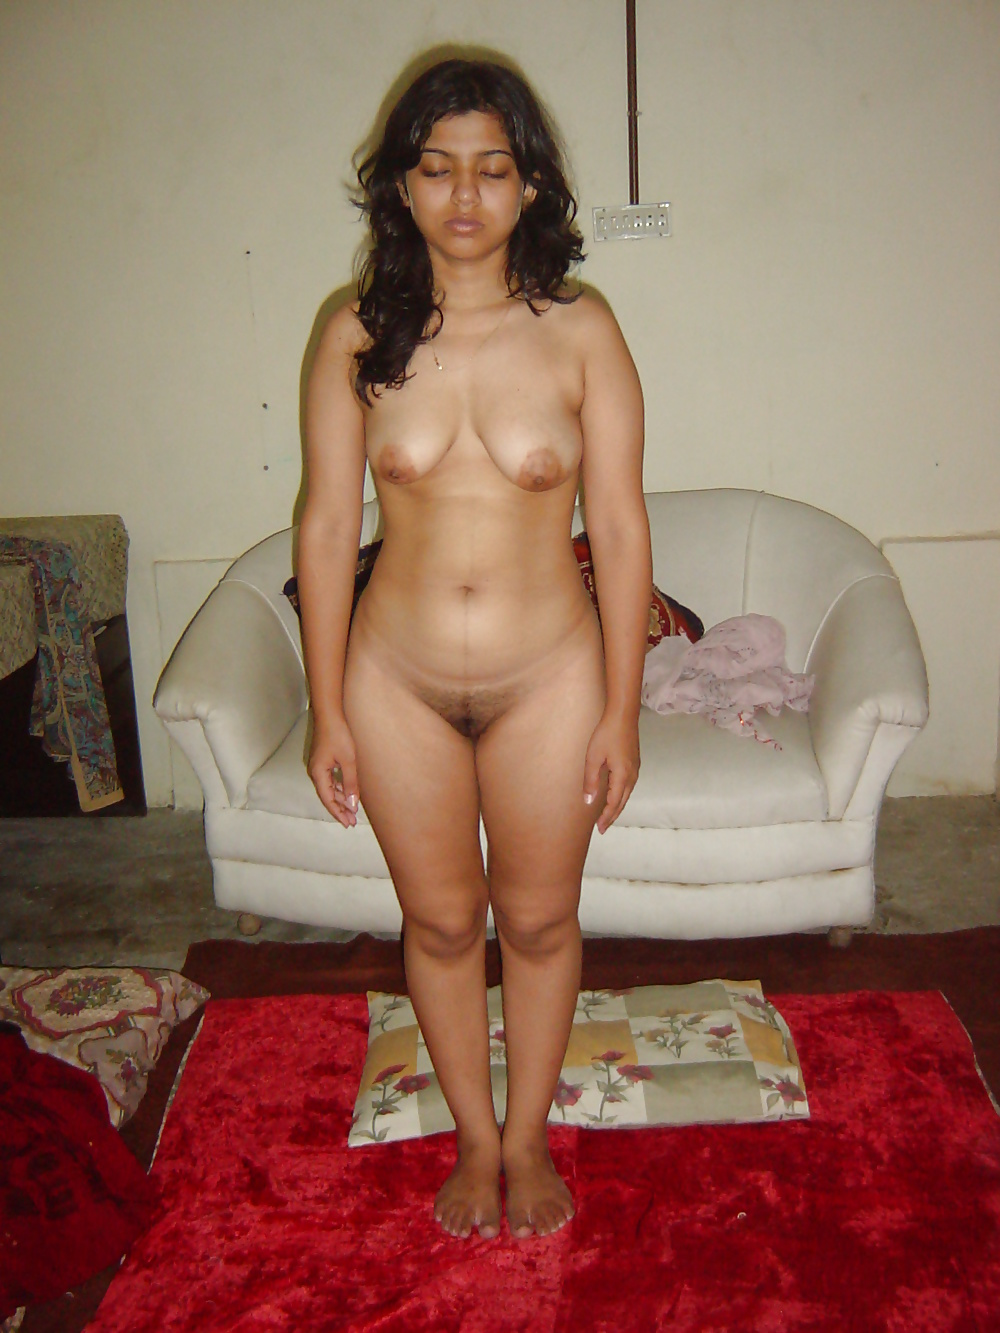 Free photo of oriya nud women xxx